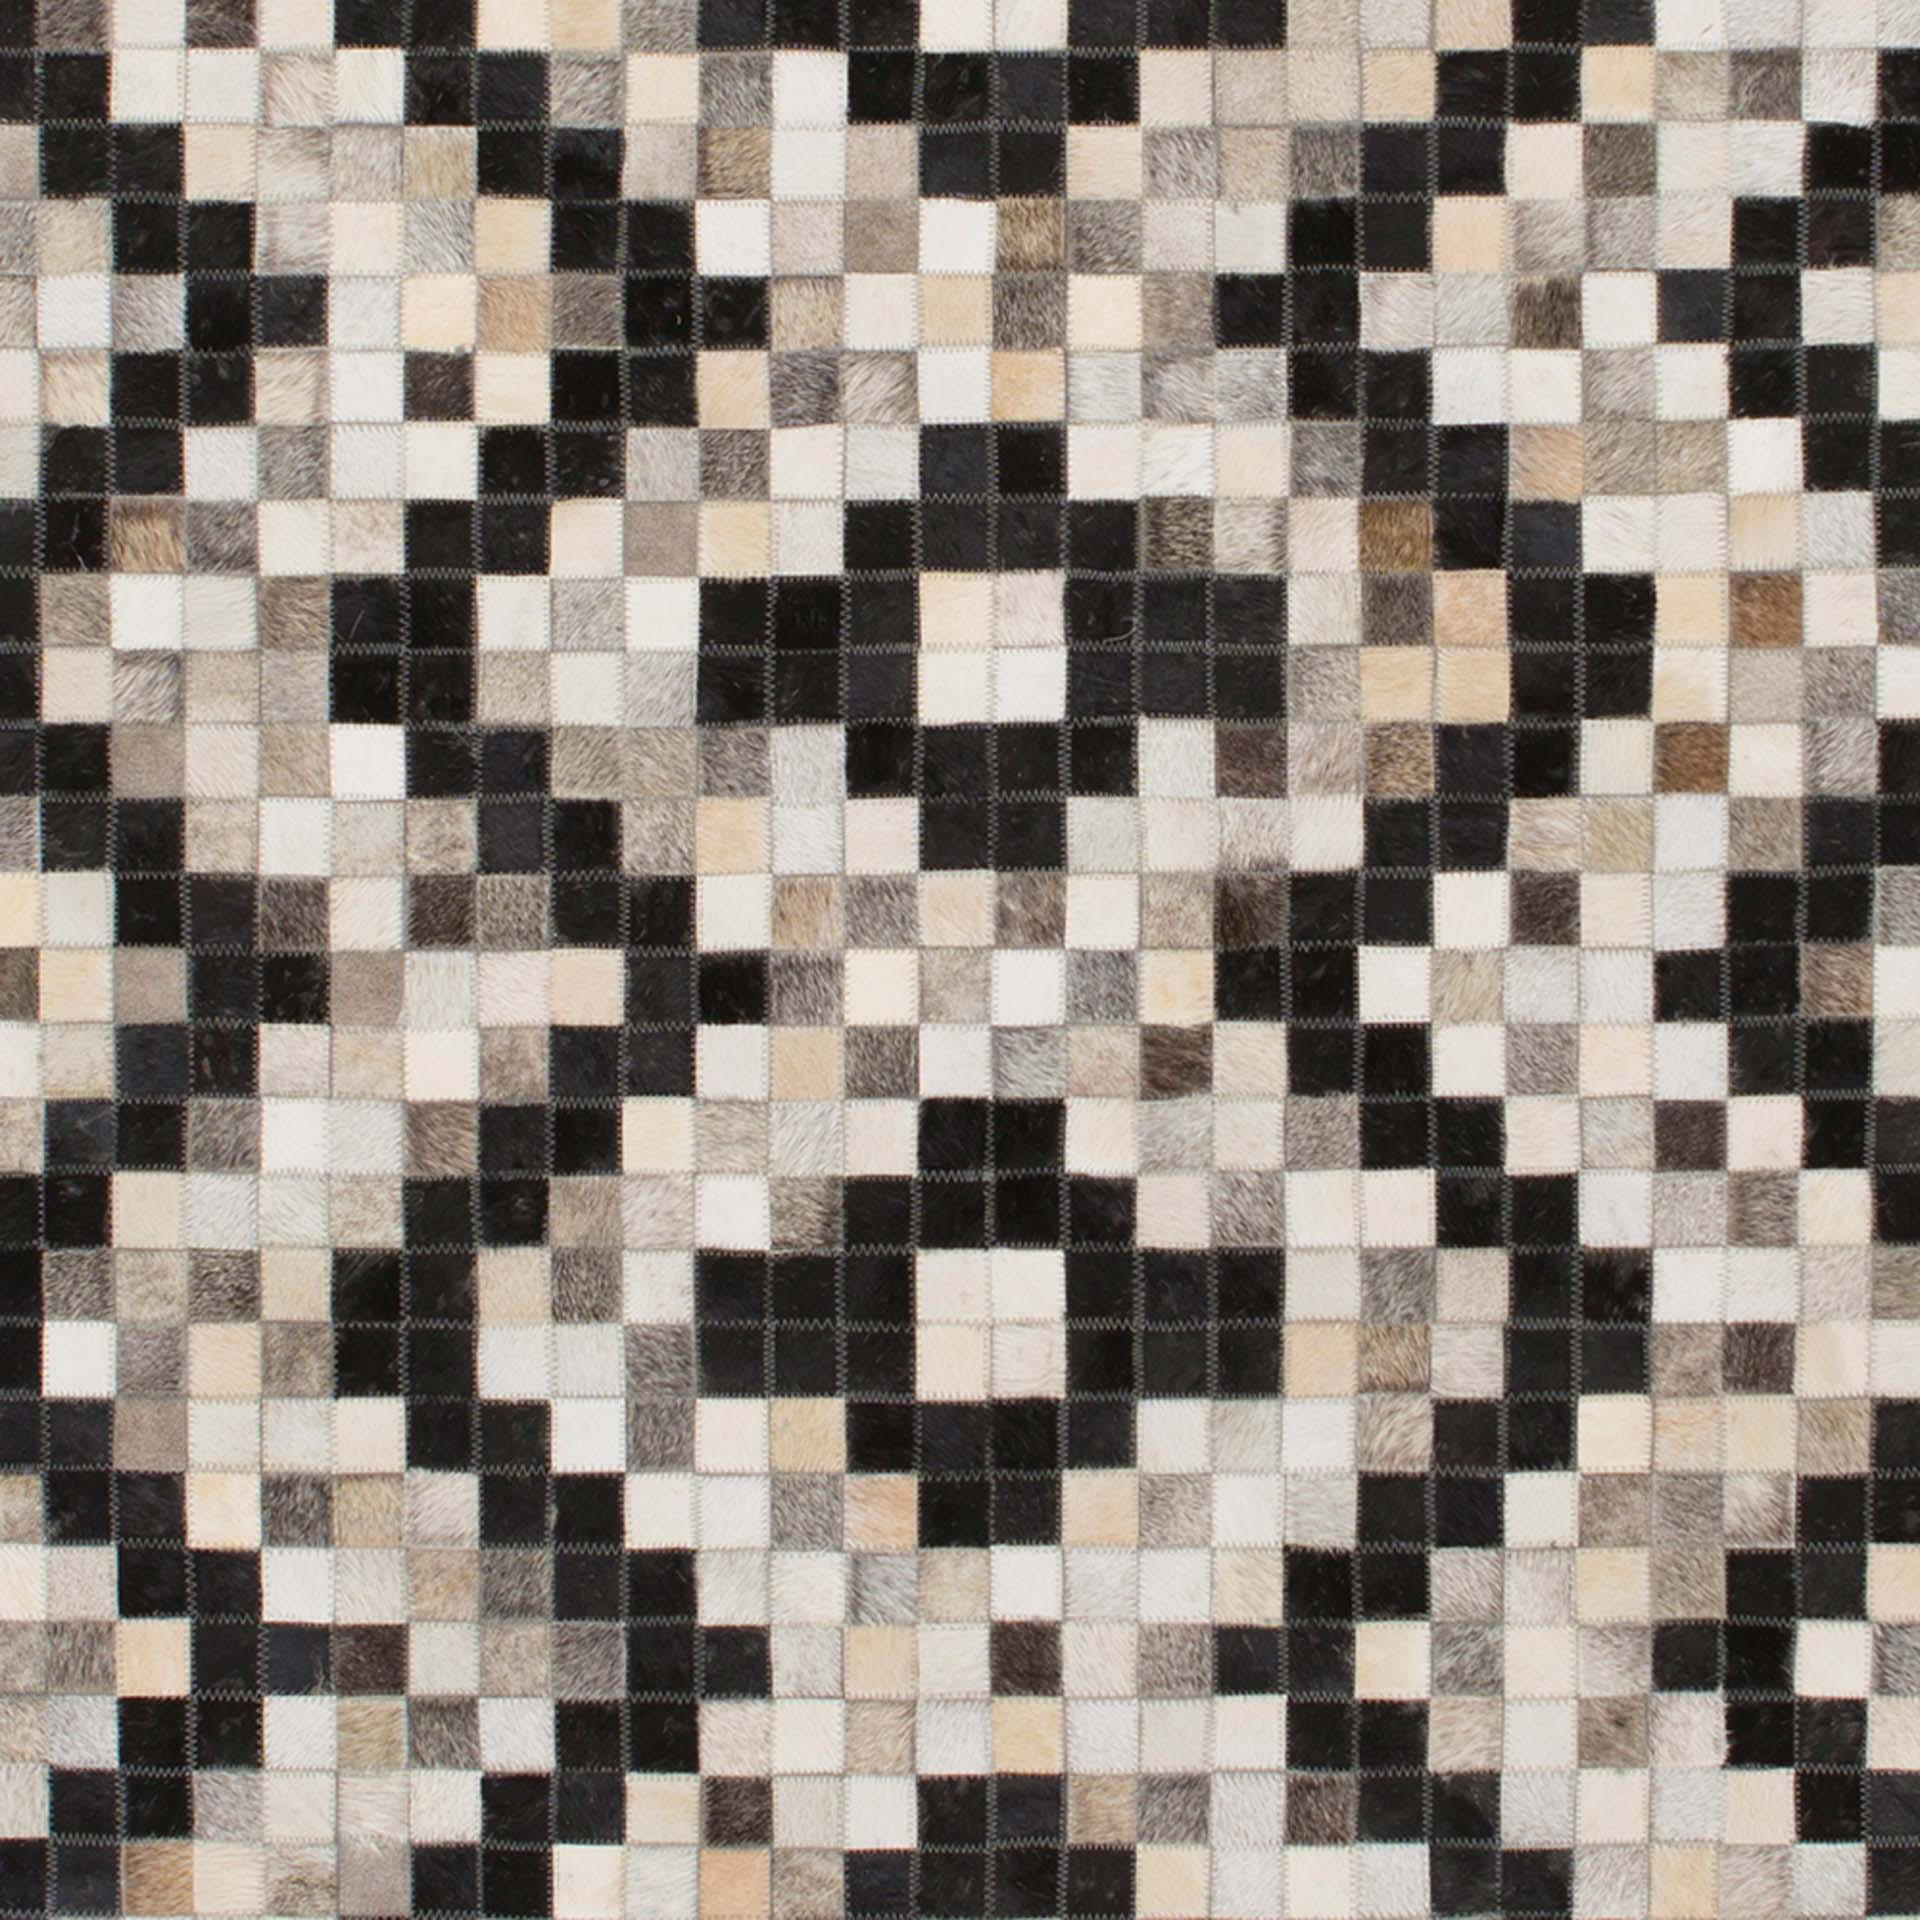 Handmade hair on hide rug from India with intricate black and gray pattern - Detail Shot